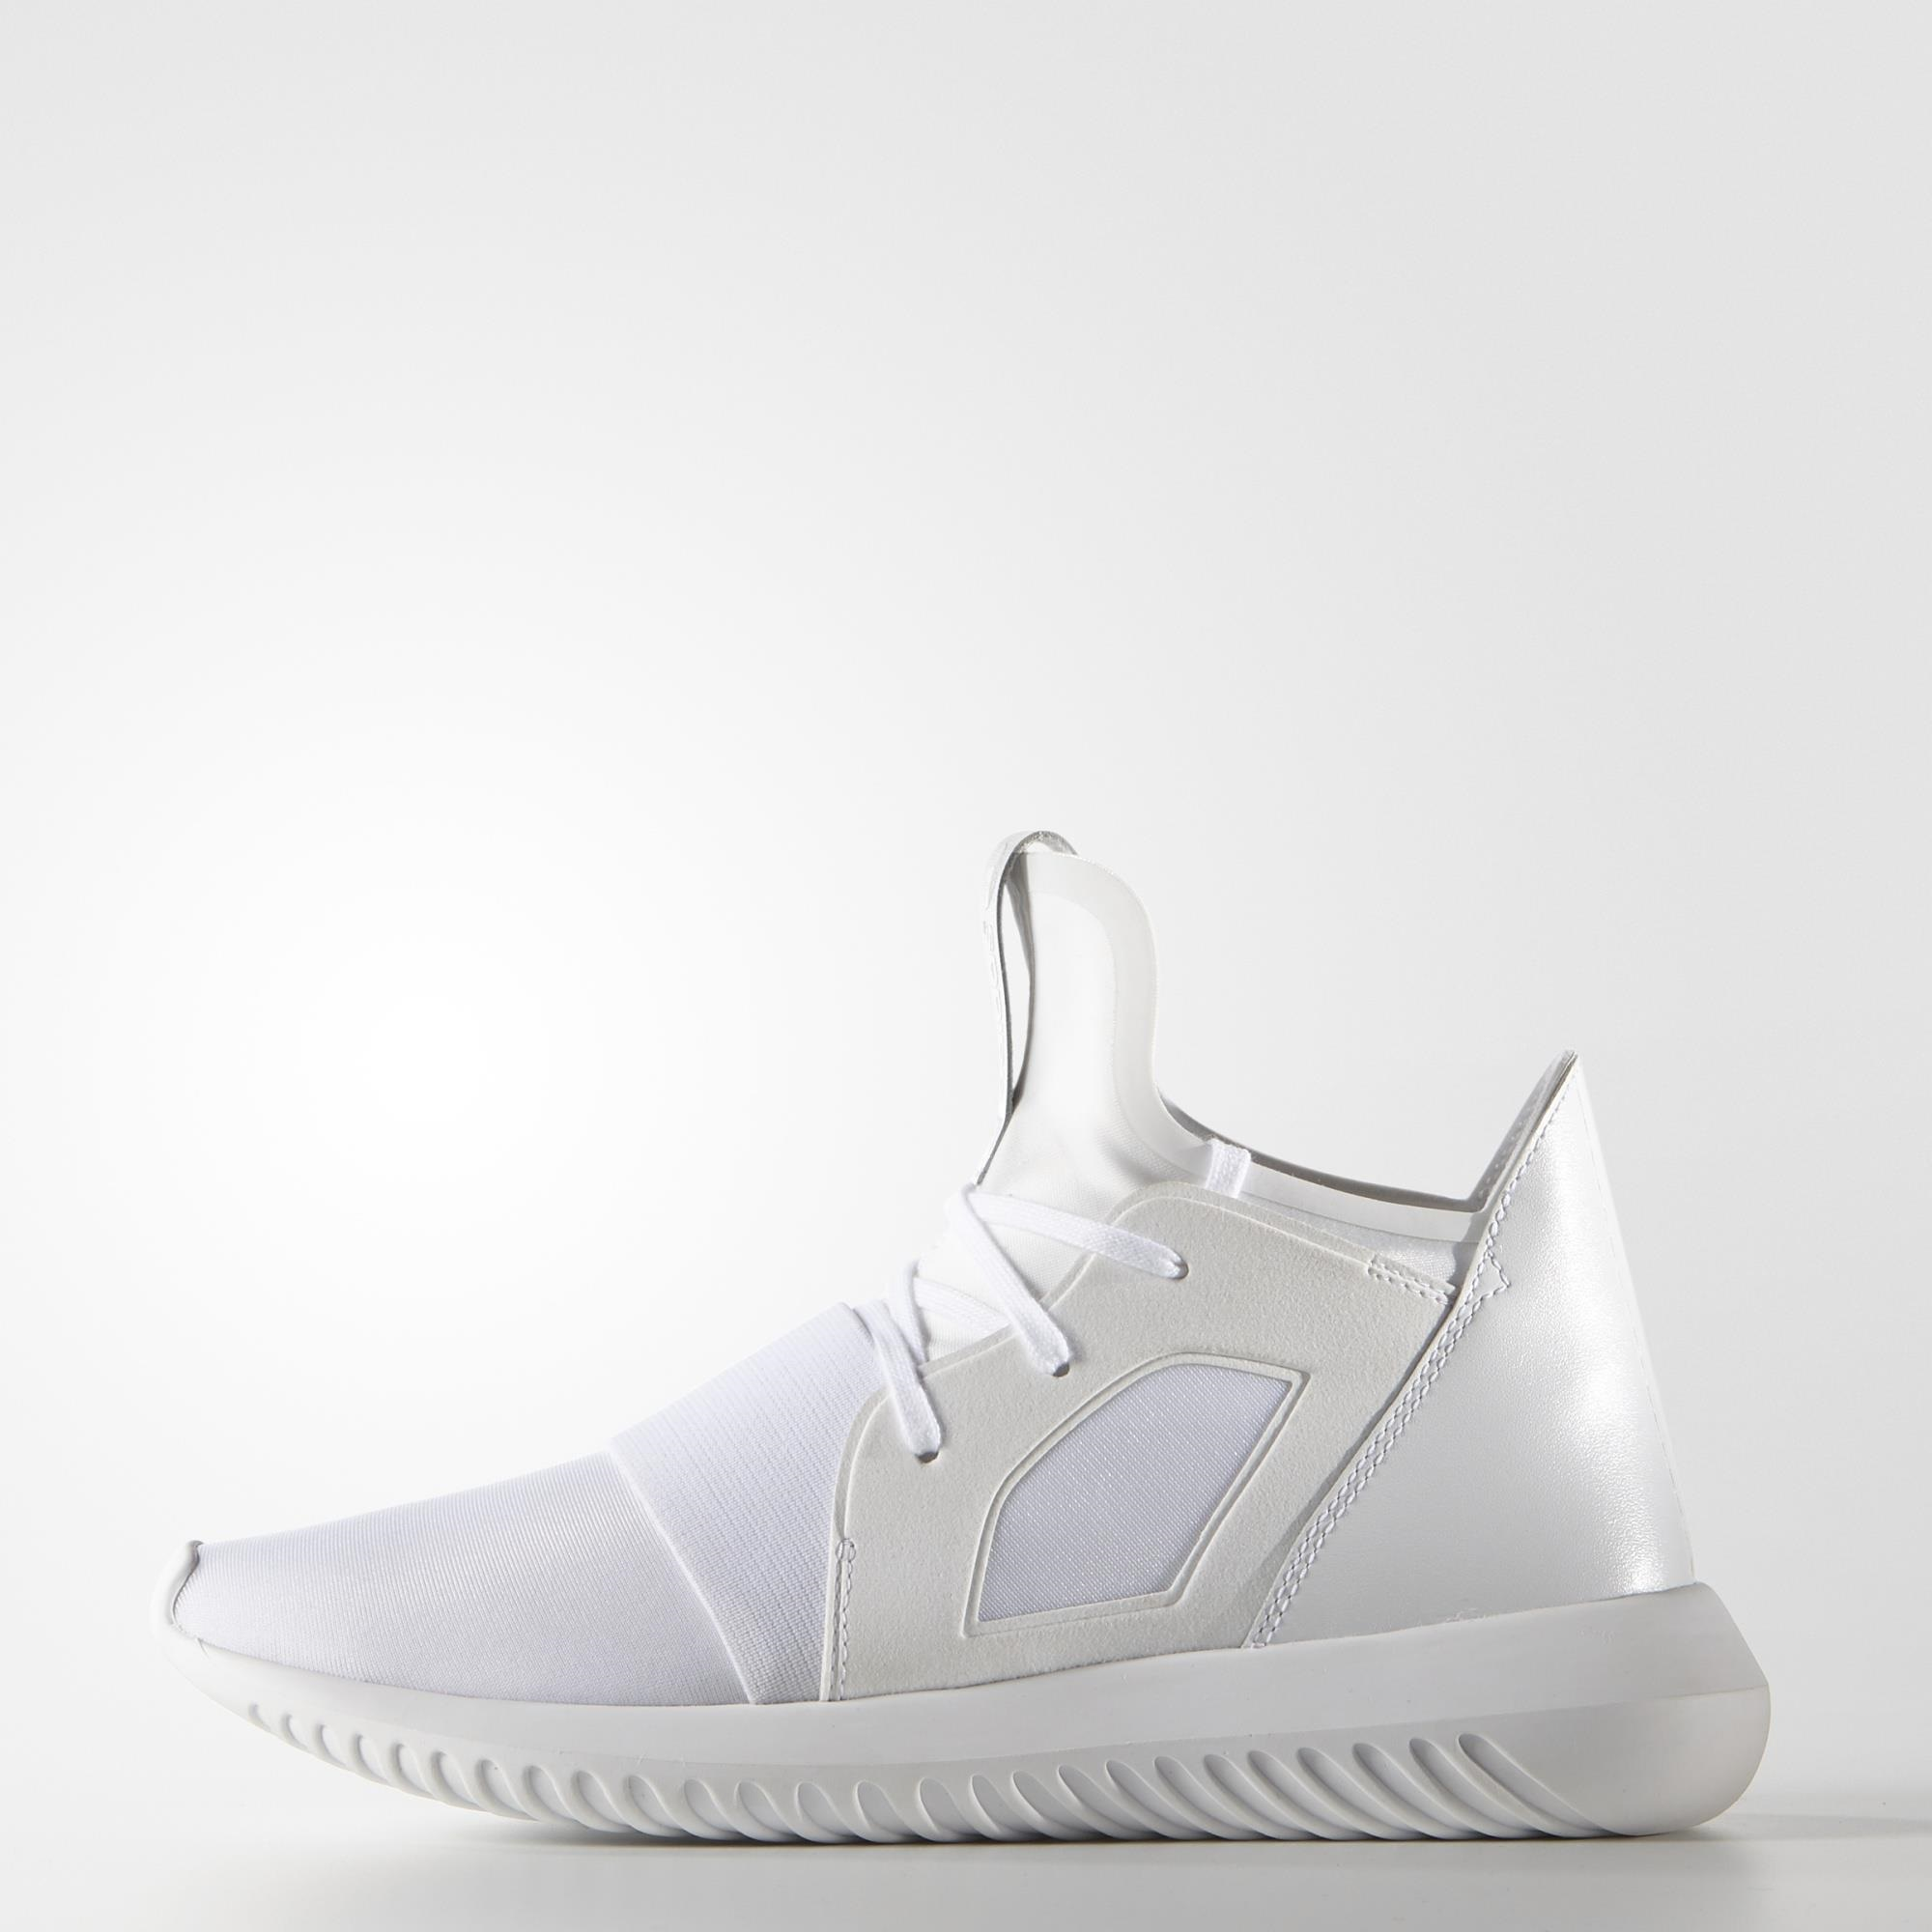 Adidas Tubular White And Shiny